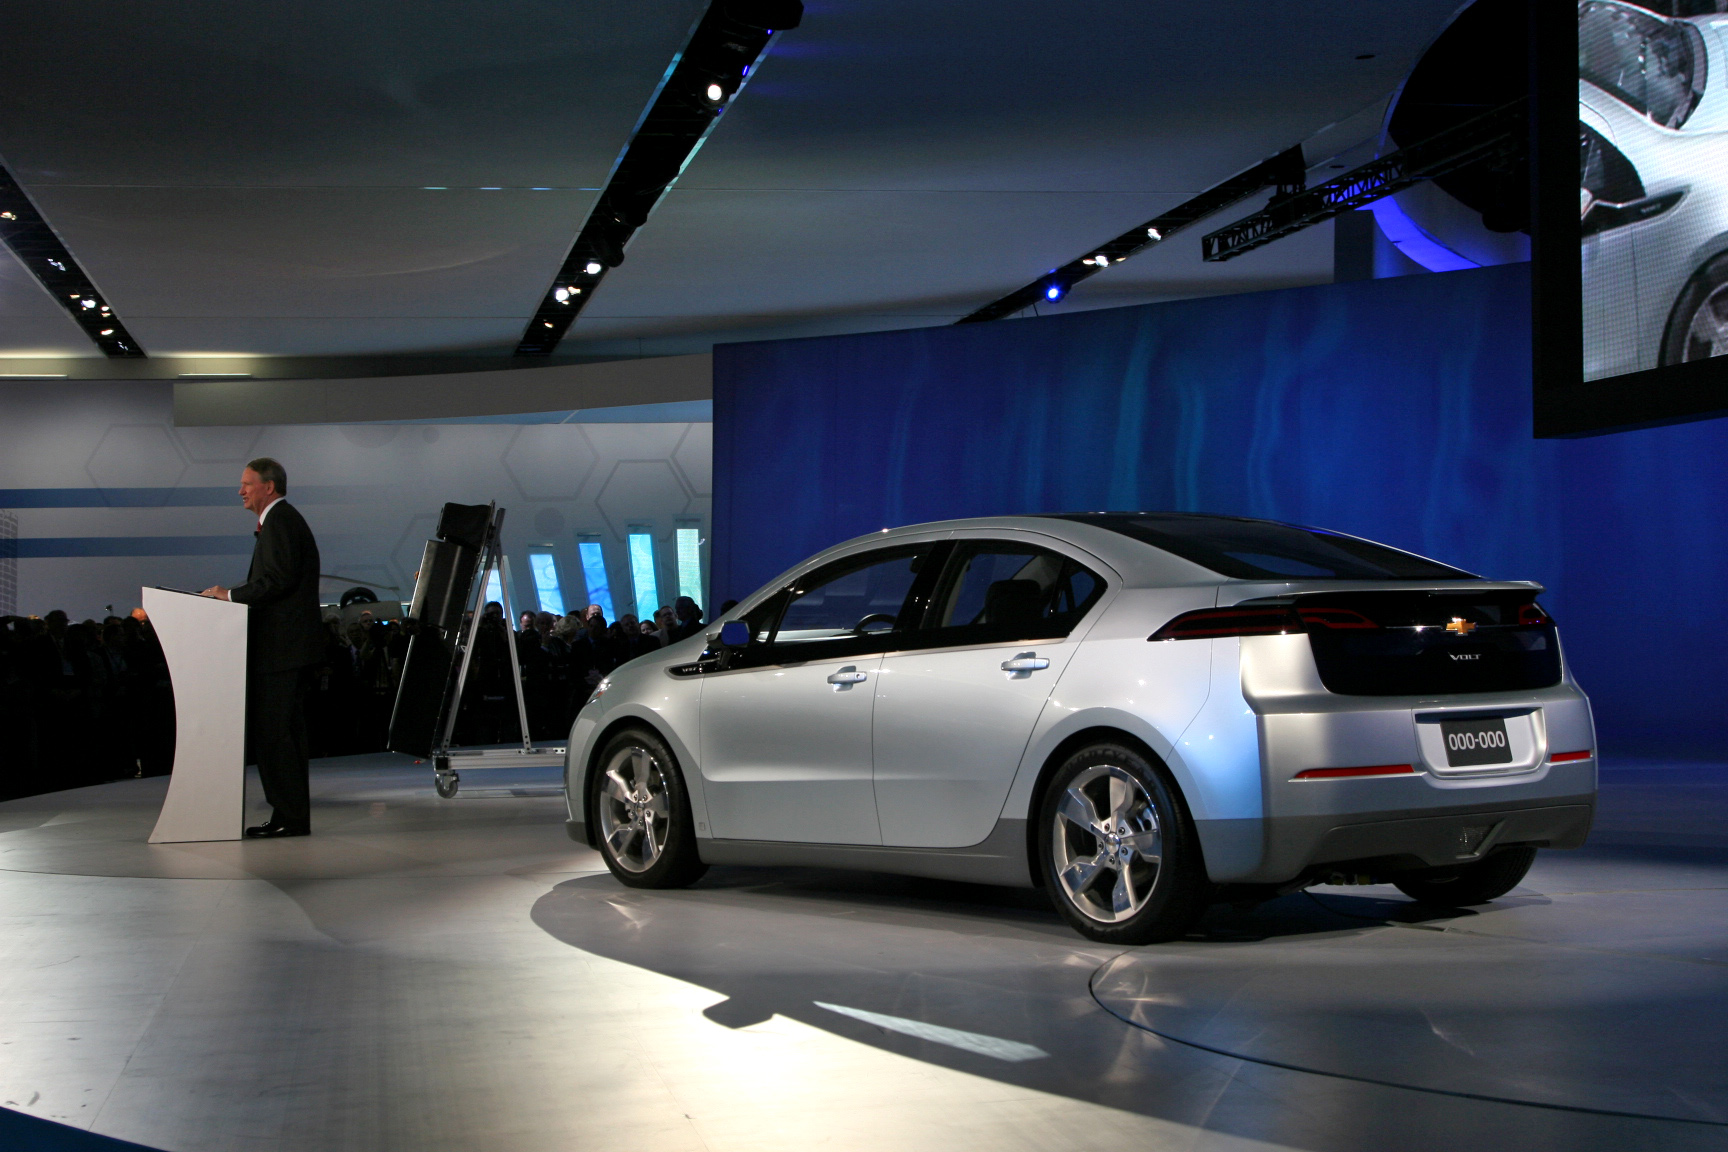 chevy volt made in america even the batteries news. Black Bedroom Furniture Sets. Home Design Ideas